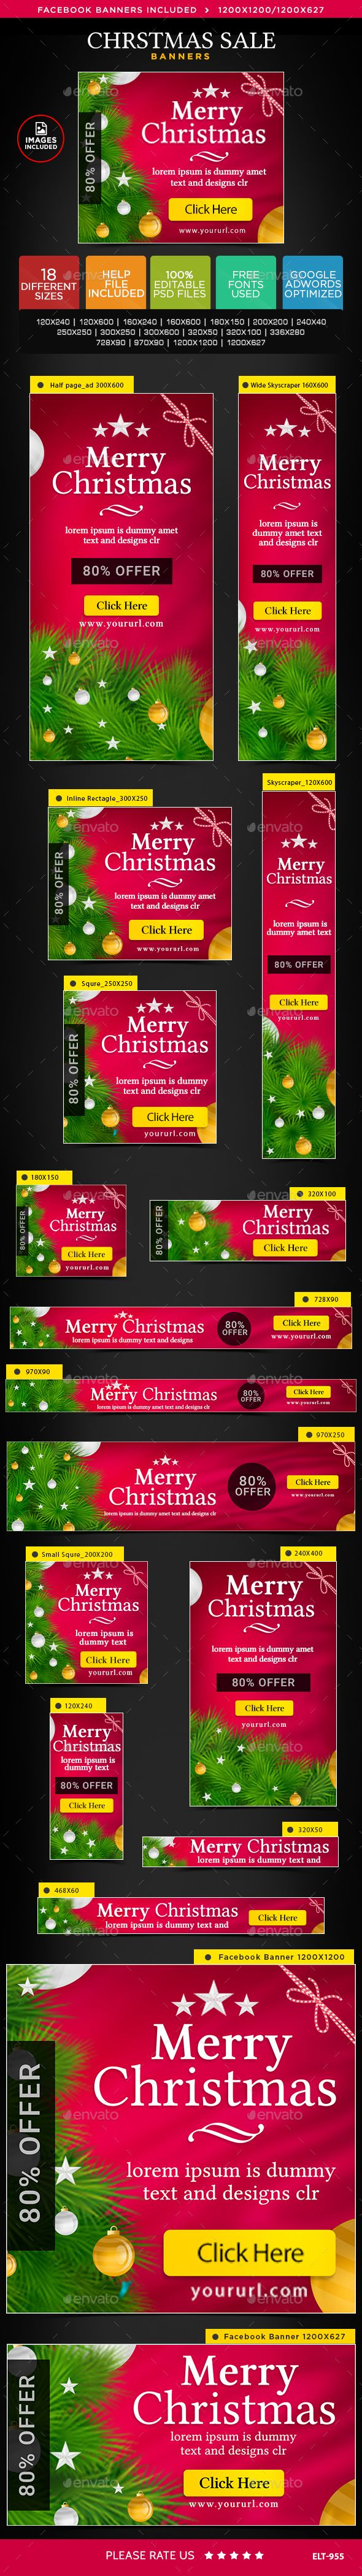 Christmas Sale Web Banners Template PSD #design #ad #xmas Download: http://graphicriver.net/item/christmas-sale-banners/14125758?ref=ksioks